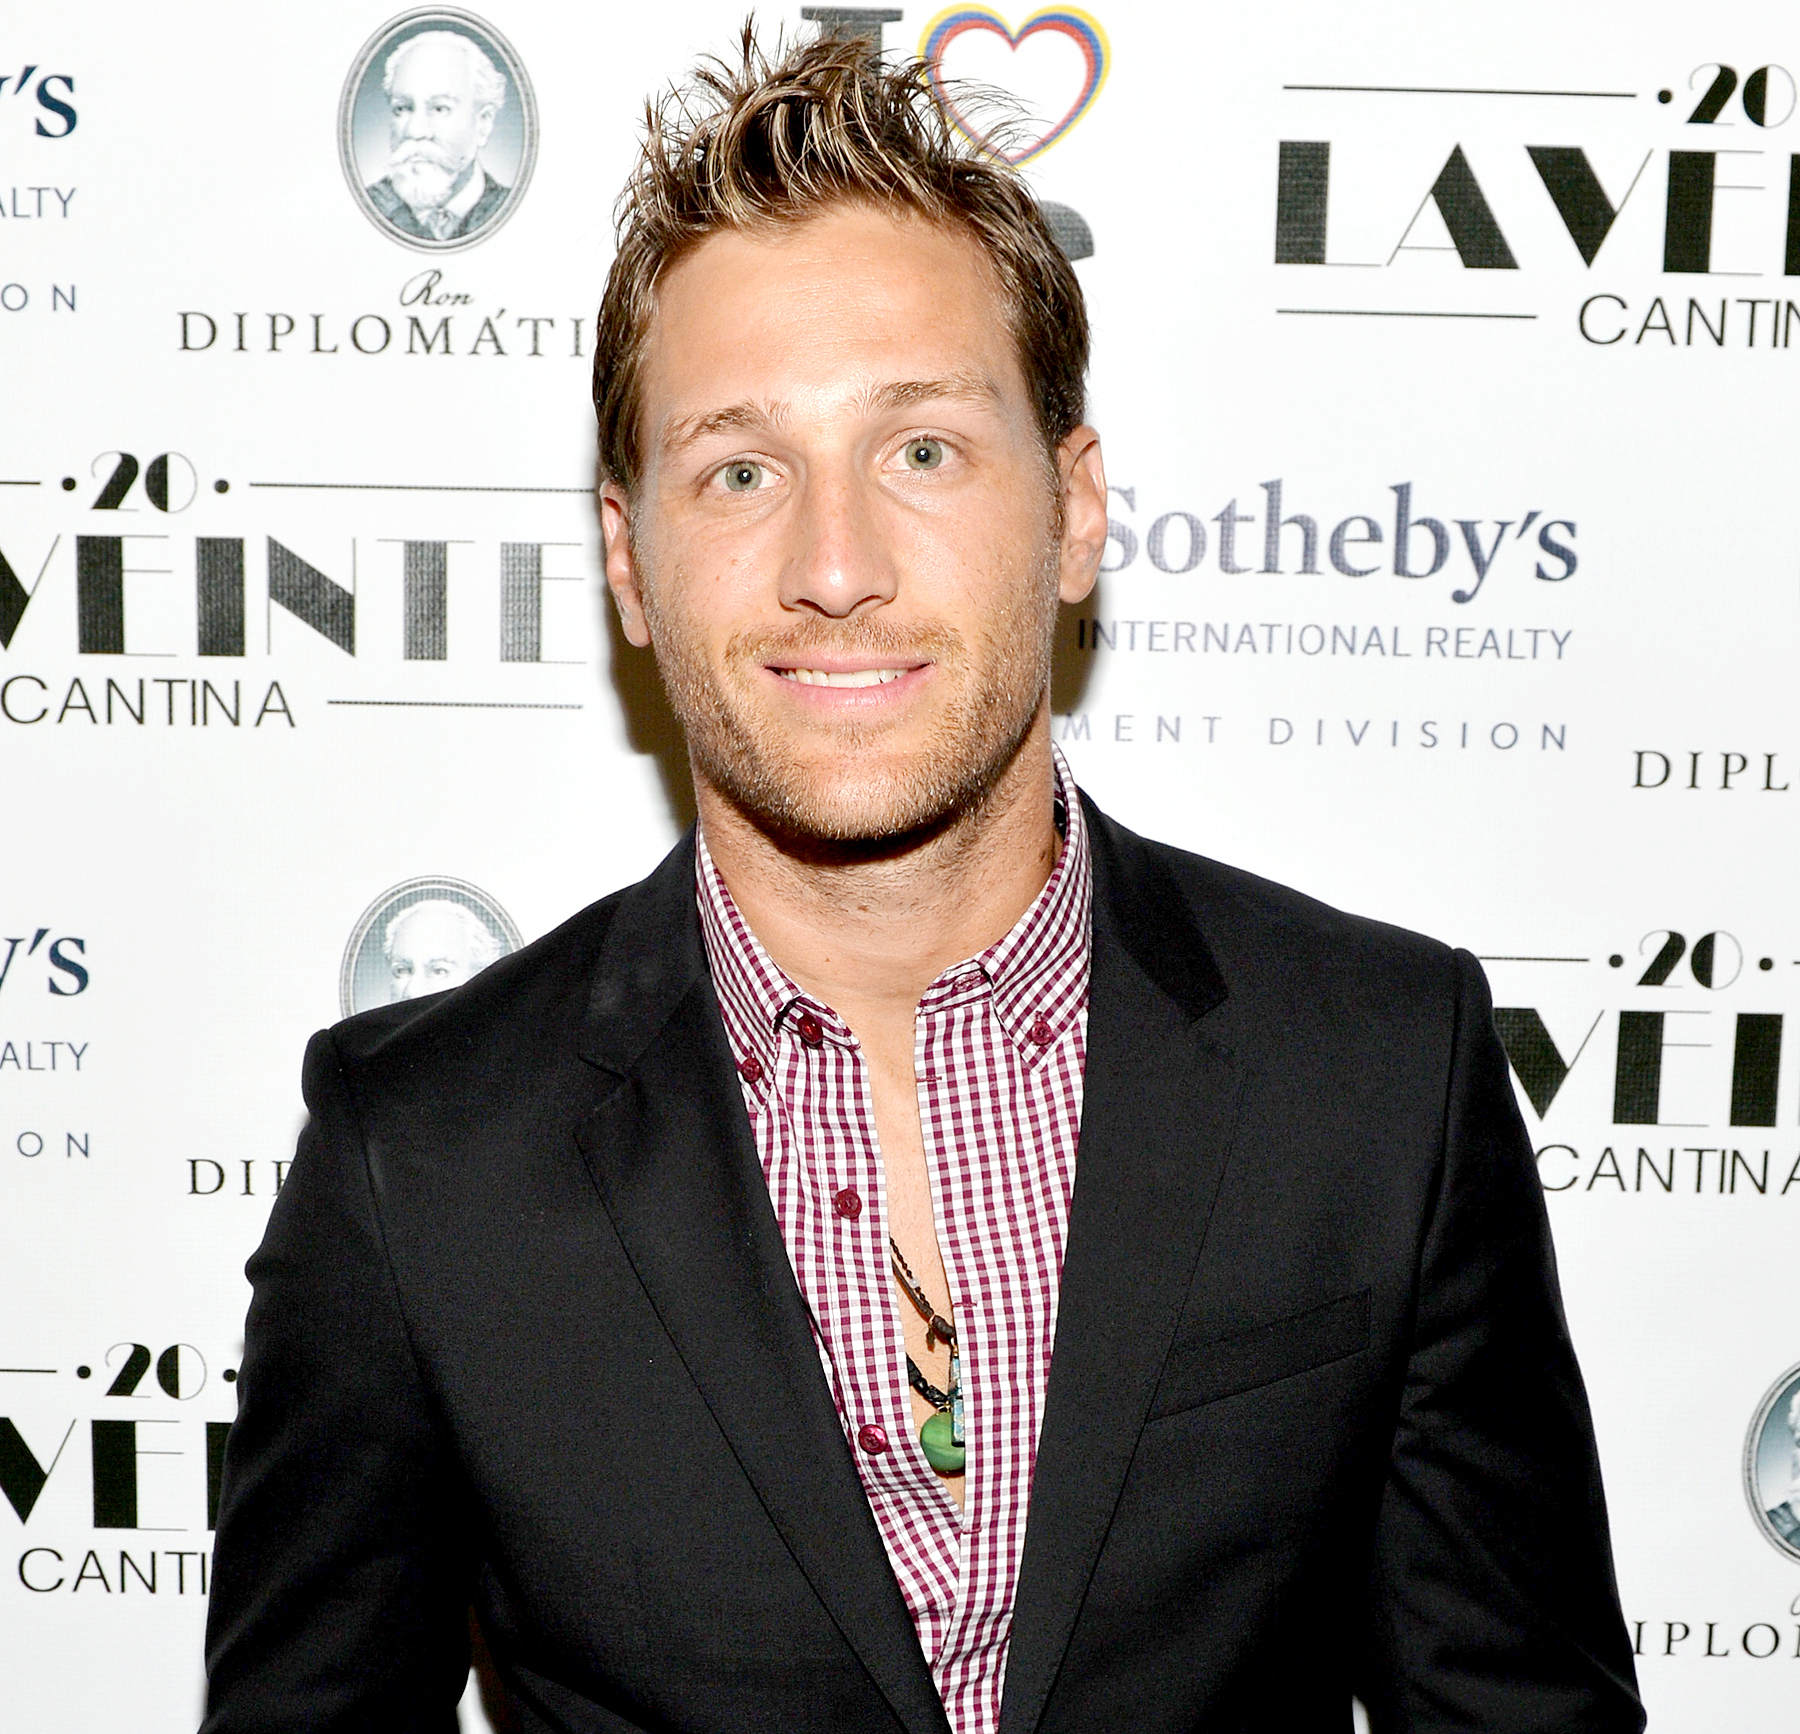 Juan Pablo Galavis attends I Love Venezuelan Foundation Event Cantina La No. 20 at The Icon Brickell on October 14, 2014 in Miami, Florida.